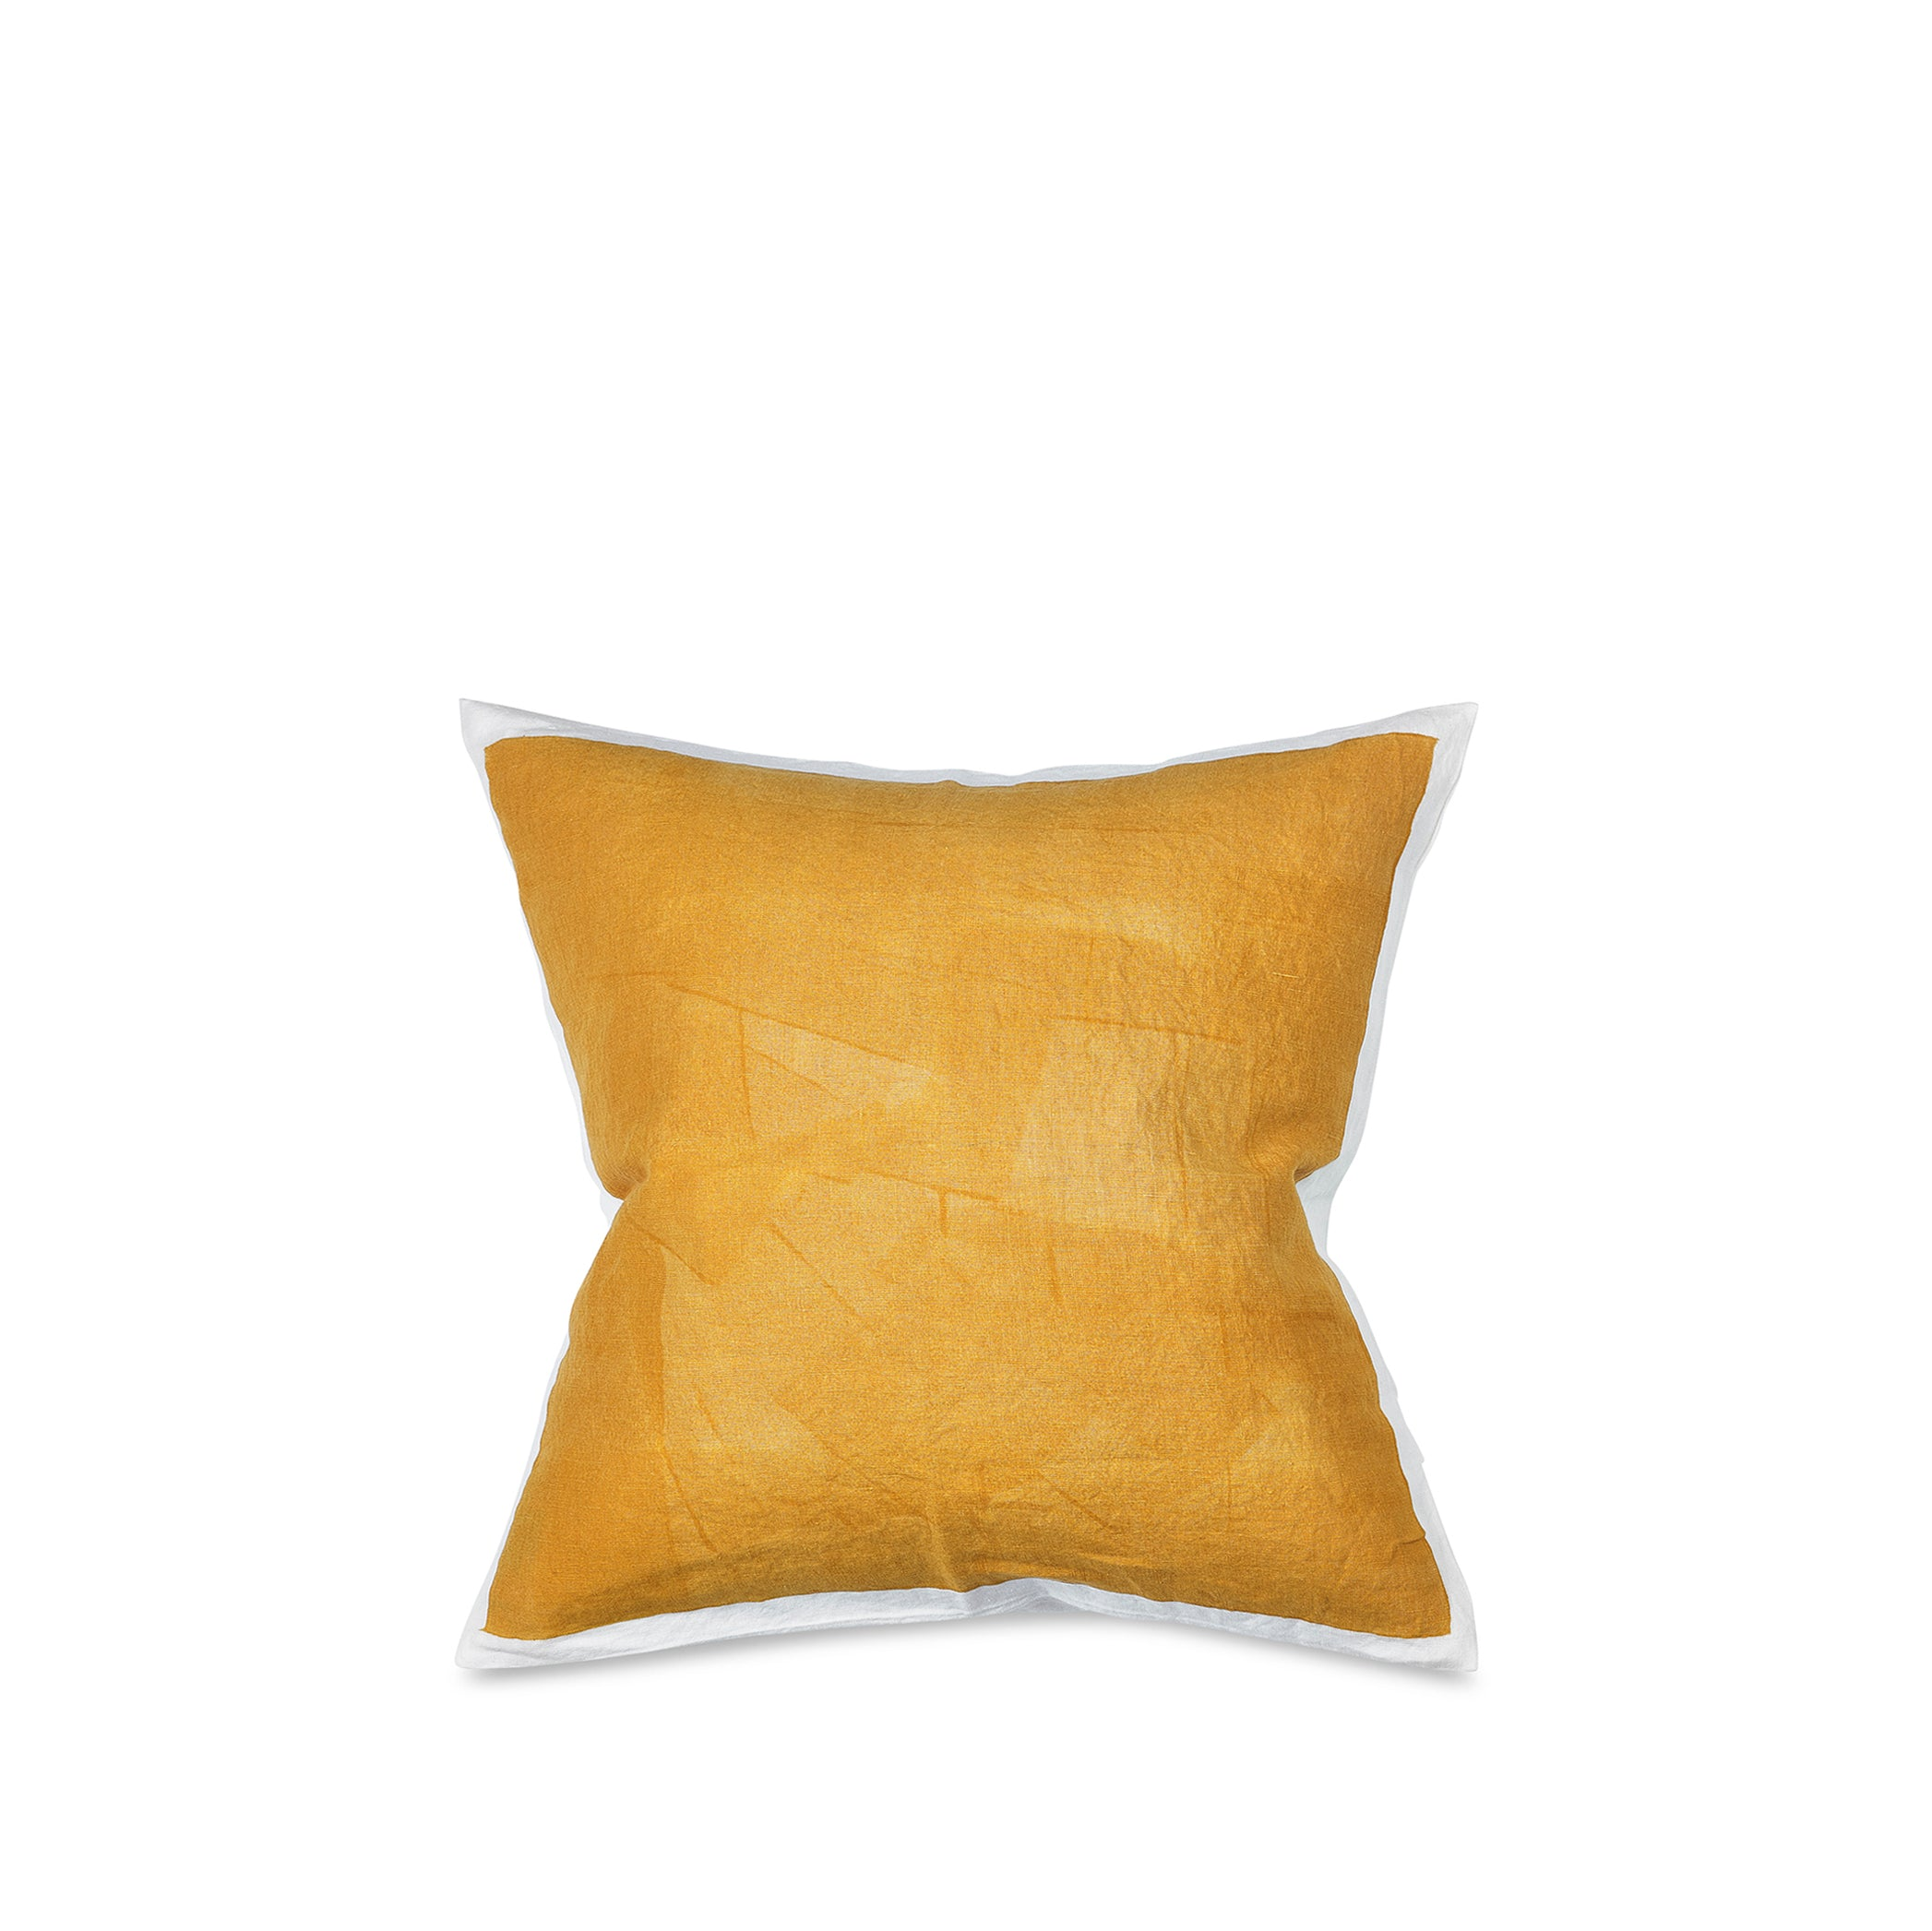 Hand Painted Linen Cushion Cover in Mustard Yellow, 50cm x 50cm